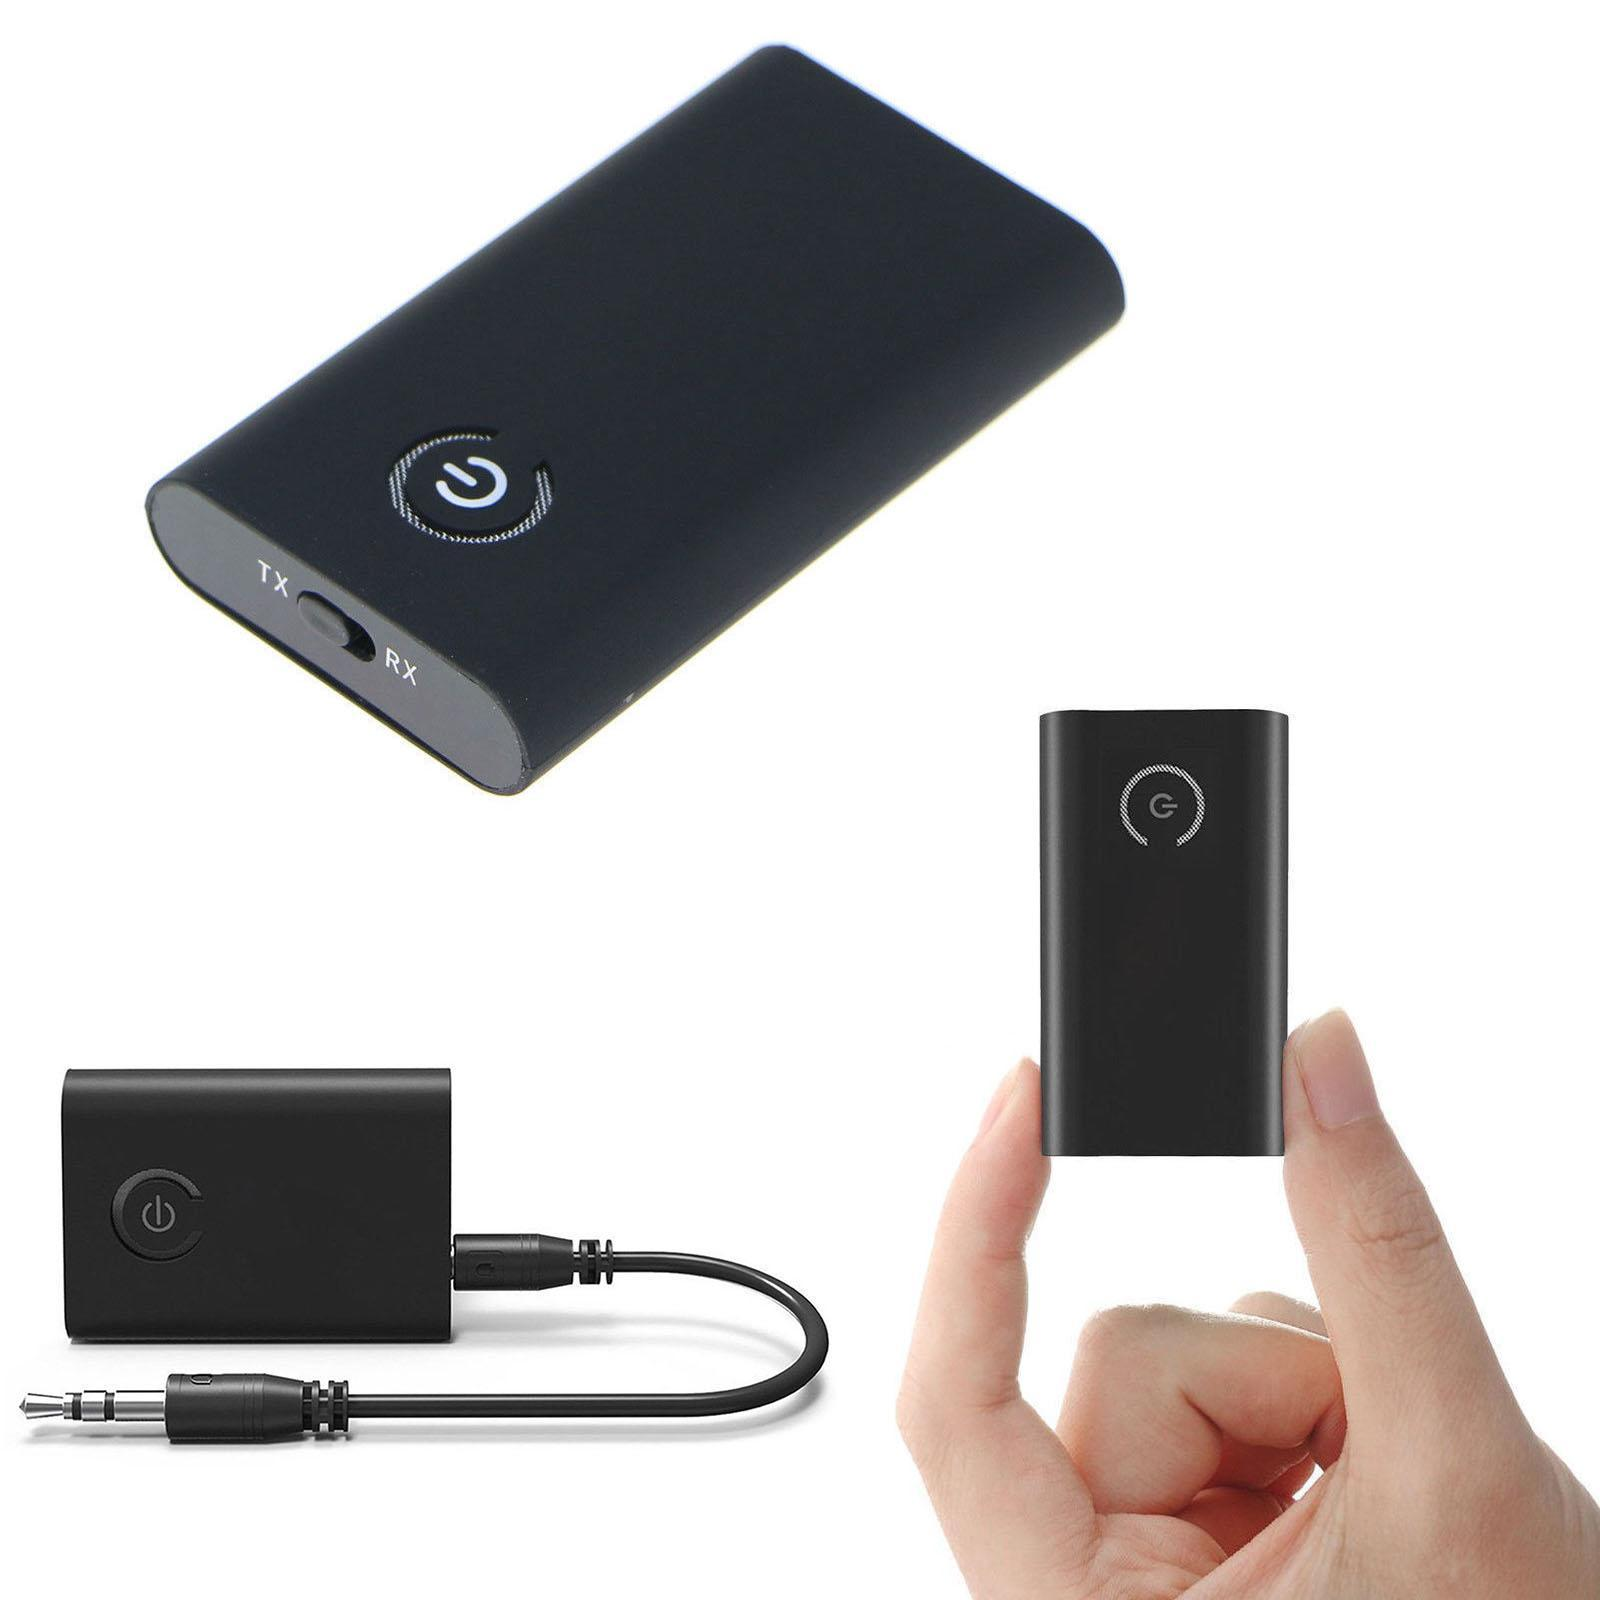 2 in 1 USB Wireless Bluetooth Audio Transmitter Button Receiver 10m 3.5mm Stereo Earphone Holder Audio Adapter